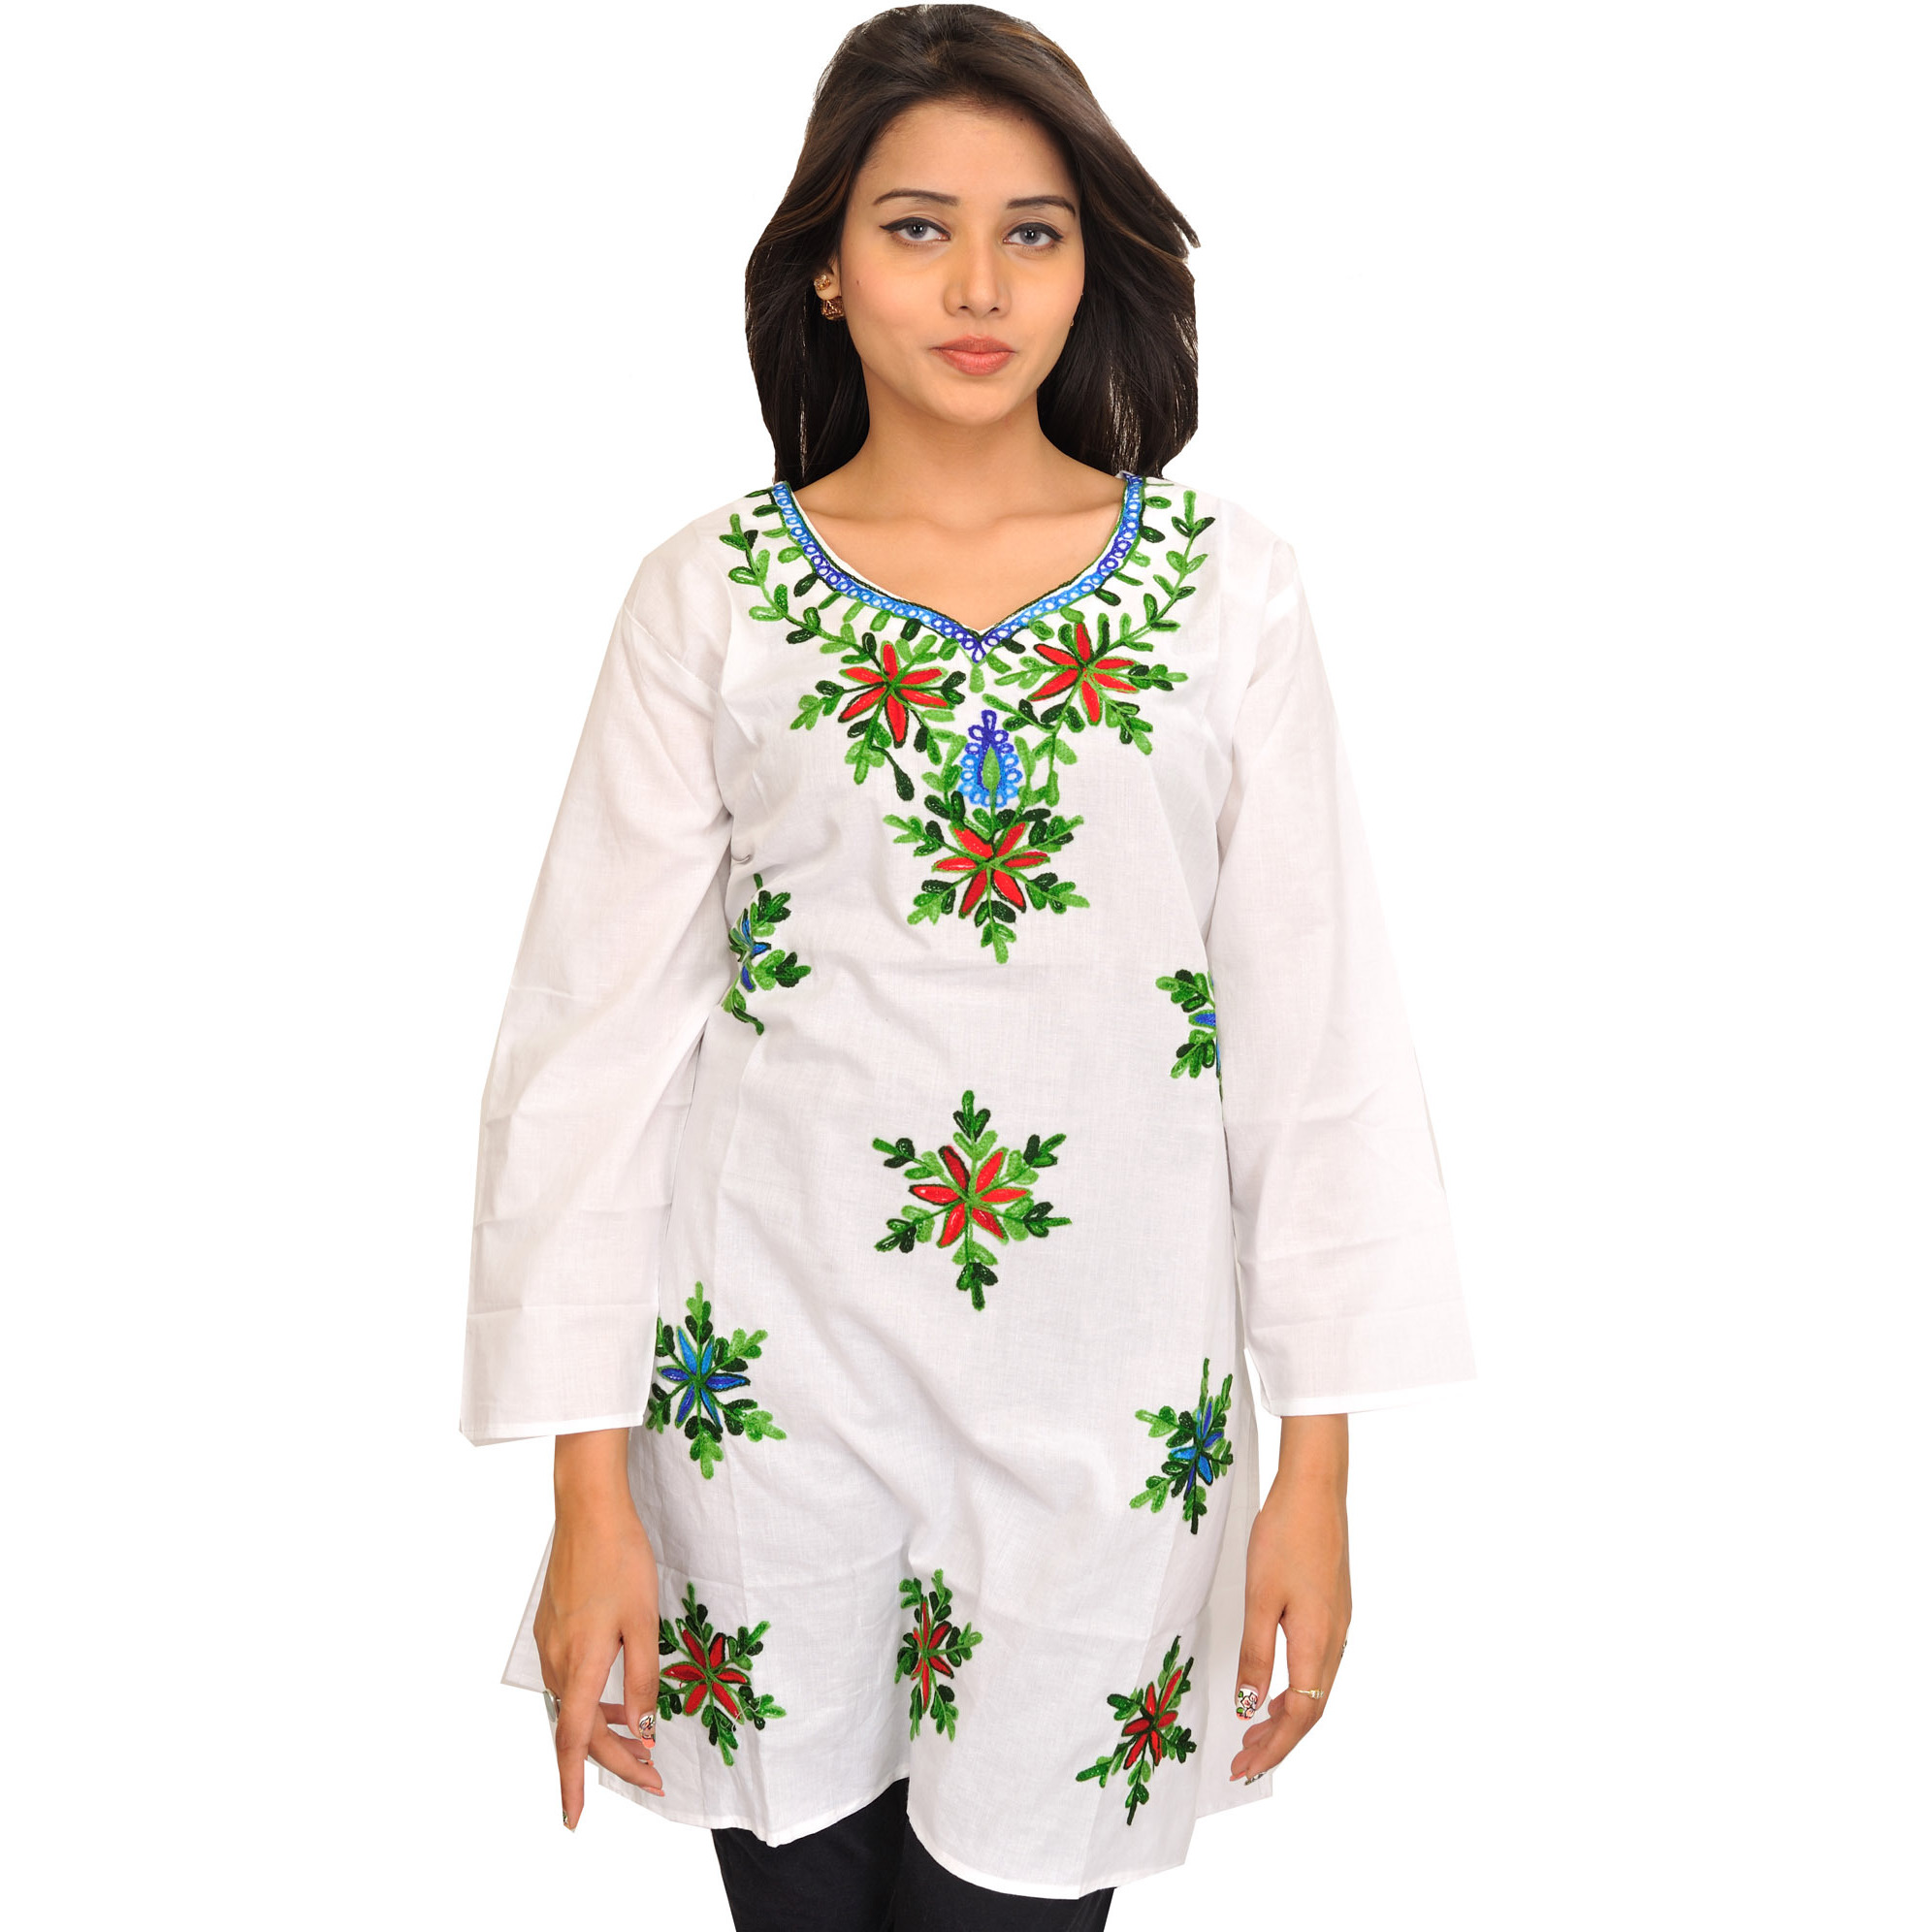 Bright-White Kurti from Kashmir with Ari Embroidered Flowers